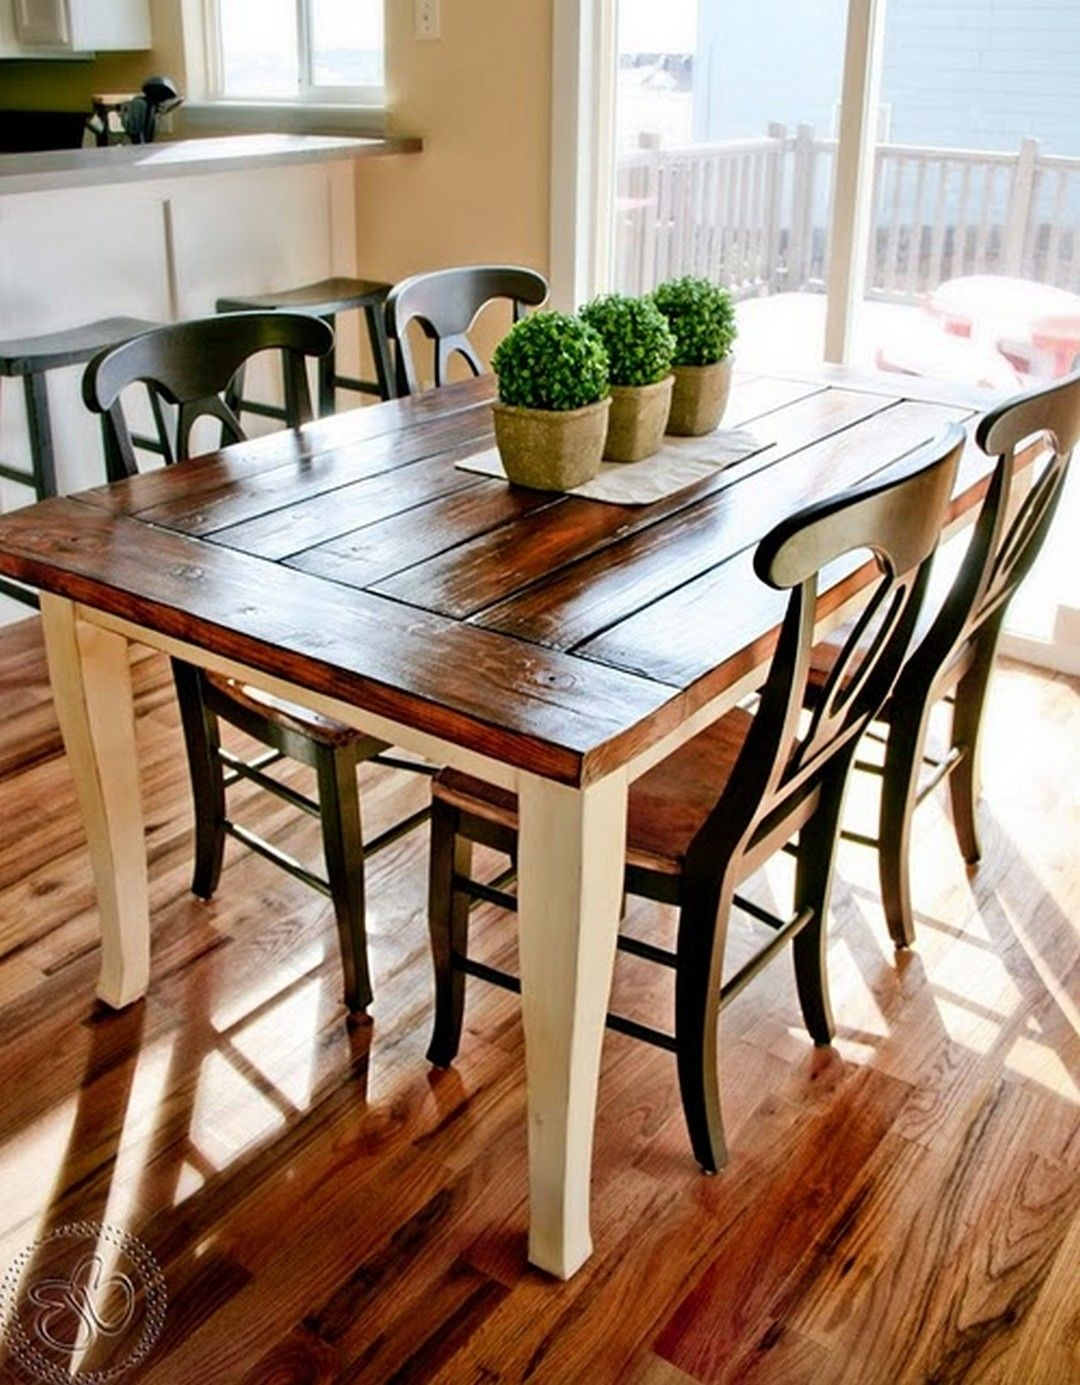 farmhouse style table and chairs foter rh foter com farmhouse style kitchen table farm style kitchen table plans that are free